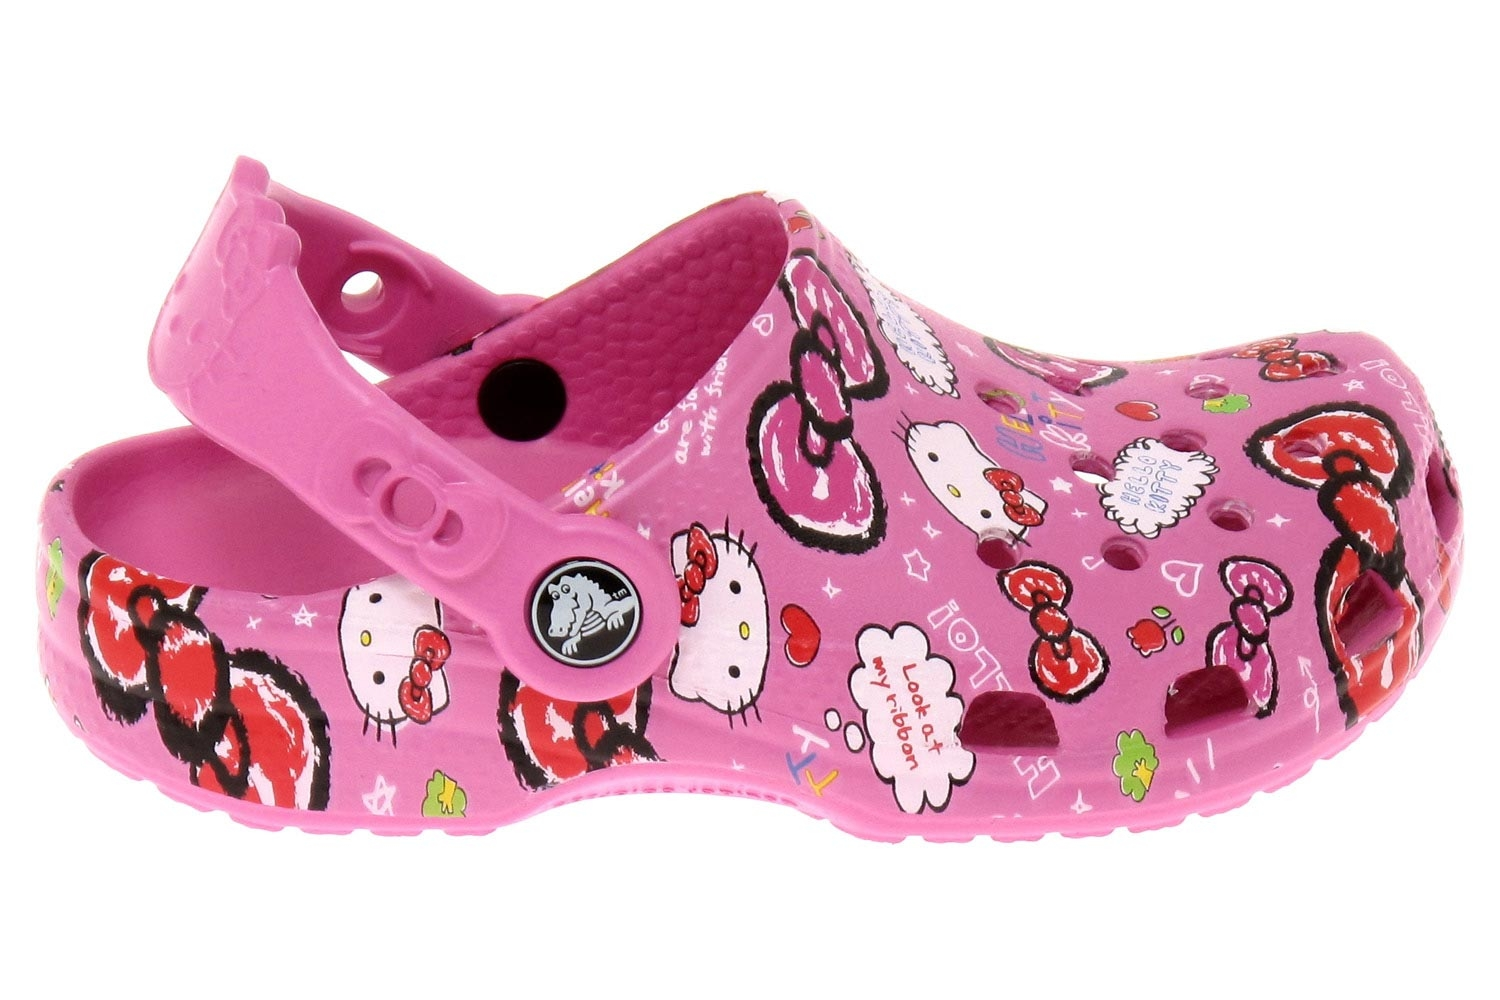 chaussures plastique crocs. Black Bedroom Furniture Sets. Home Design Ideas